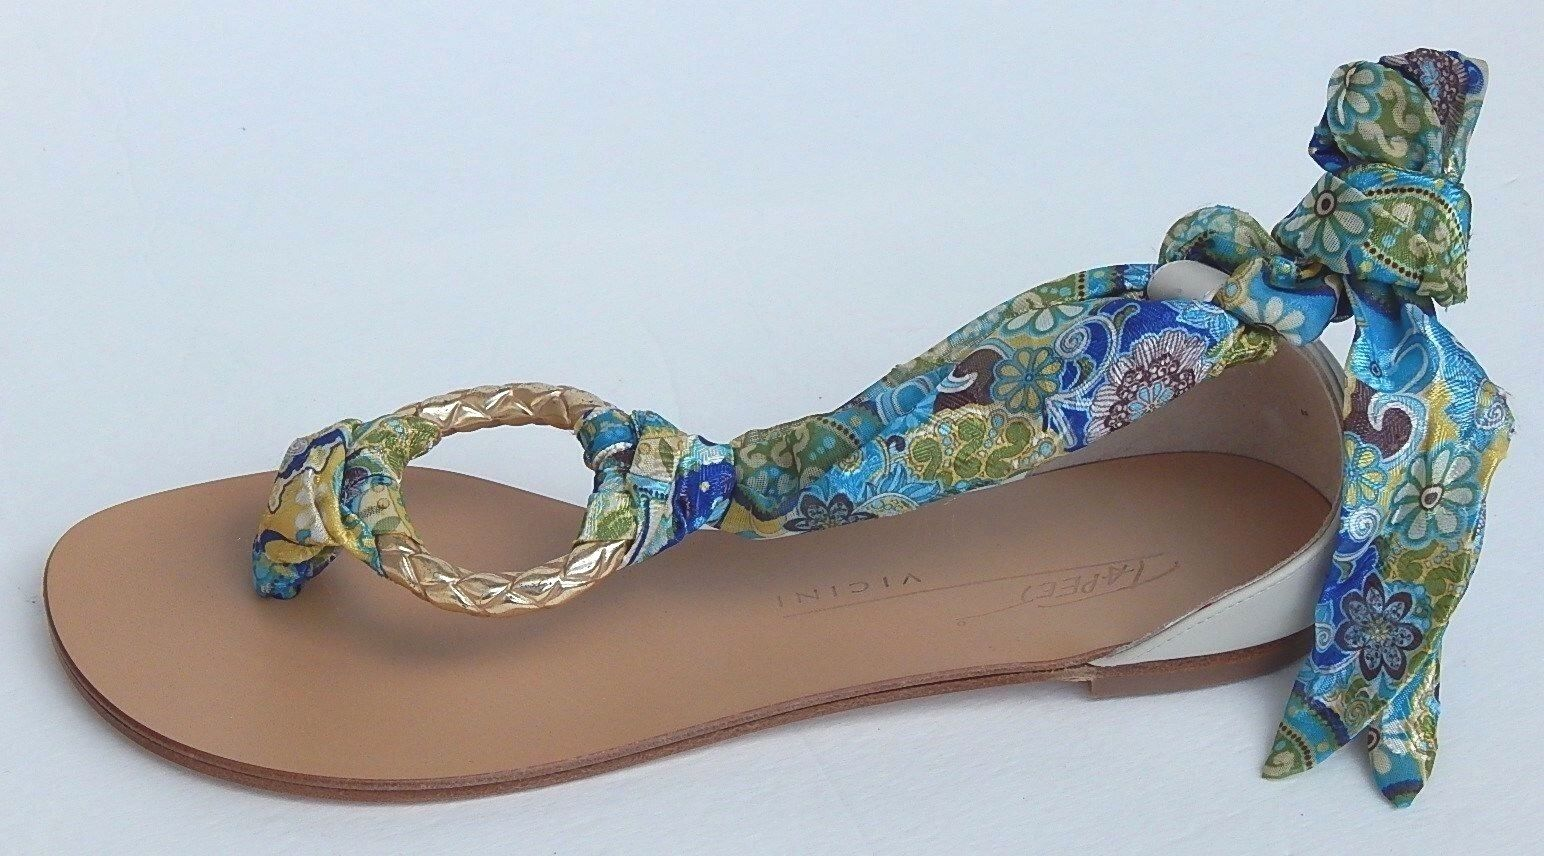 VICINI JANIS MADE IN ITALY THONGS SANDALS sz 38 NEW AUTHENTIC